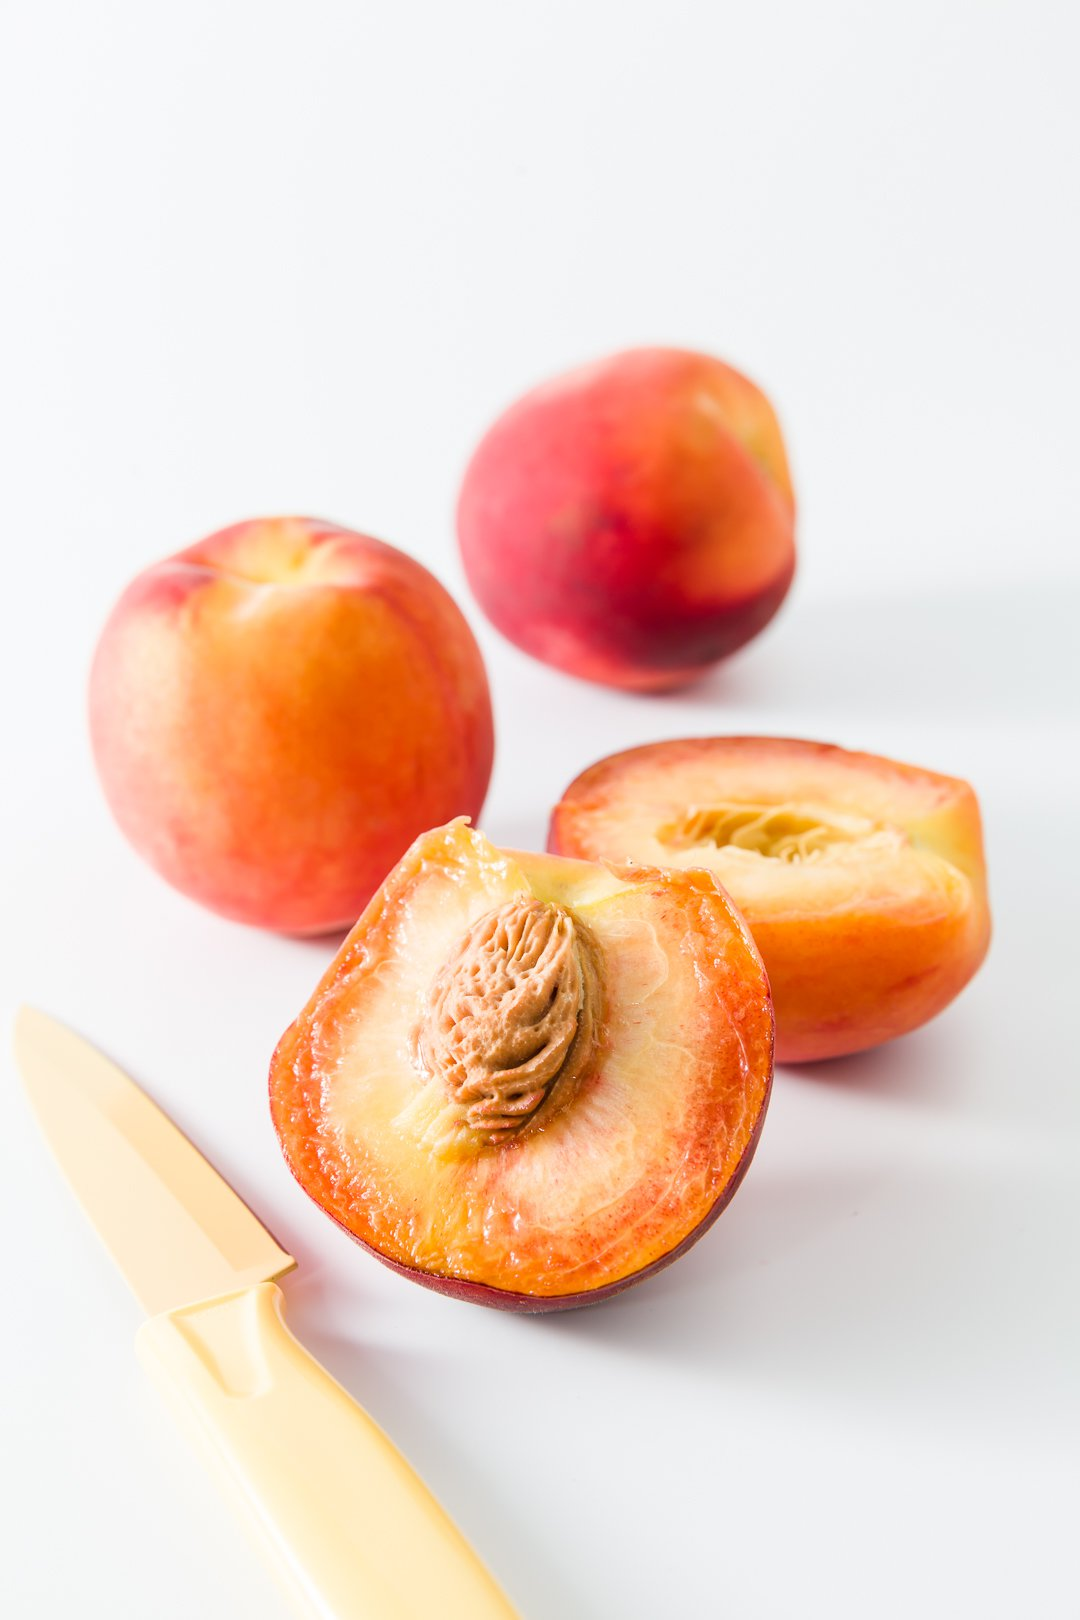 Peaches sliced in half